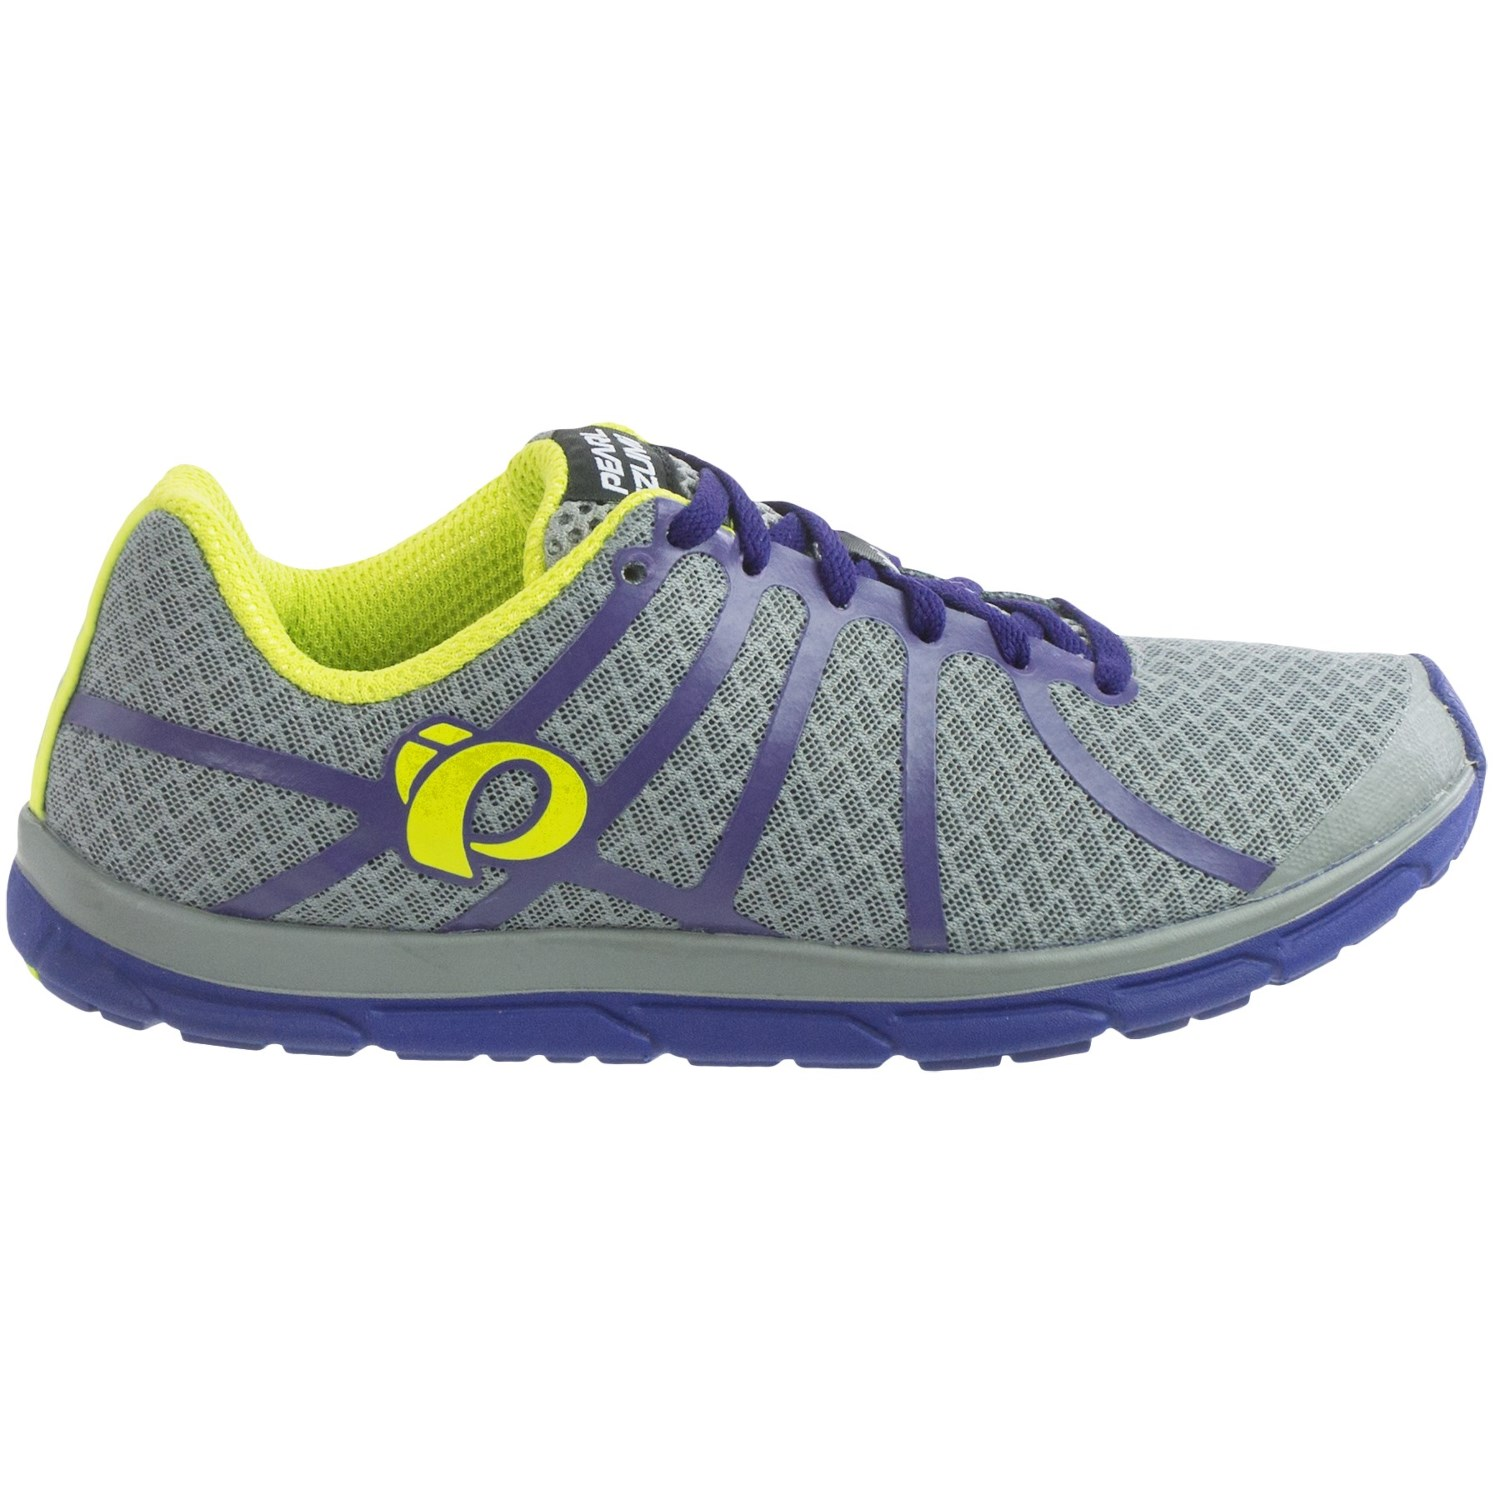 Are Pearl Izumi Good Running Shoes